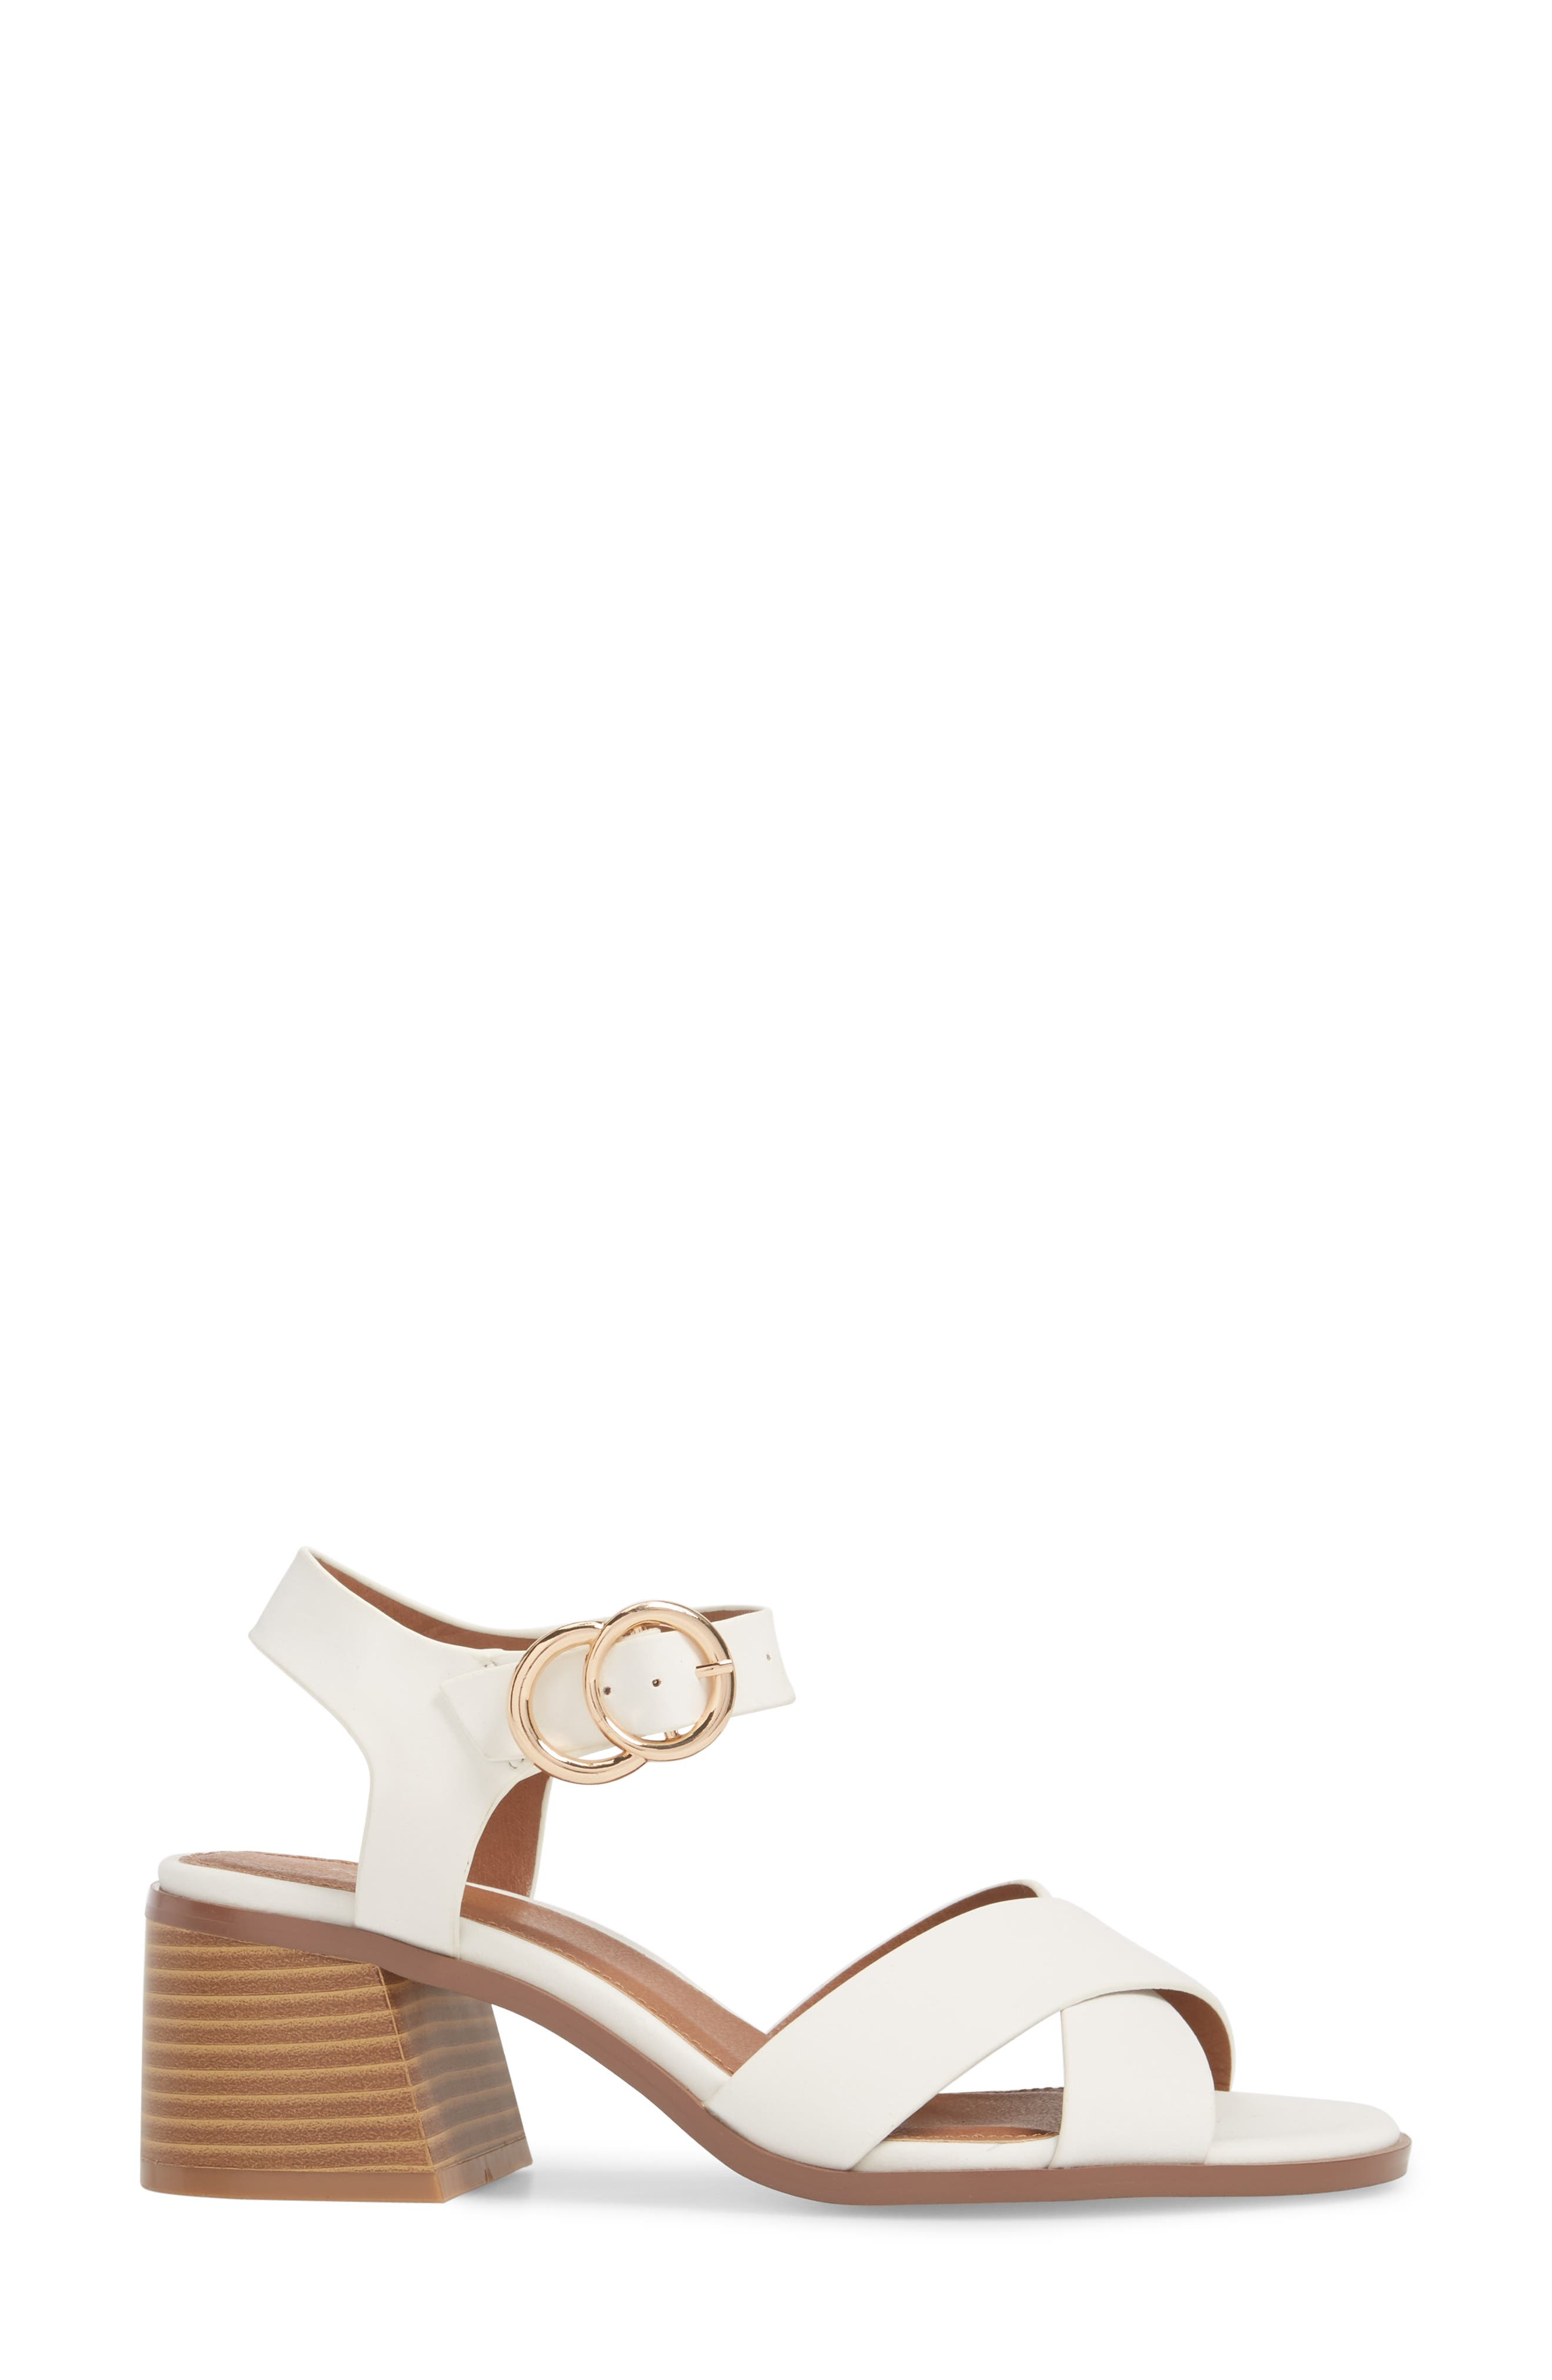 Dee Dee Block Heel Sandal,                             Alternate thumbnail 3, color,                             White Multi